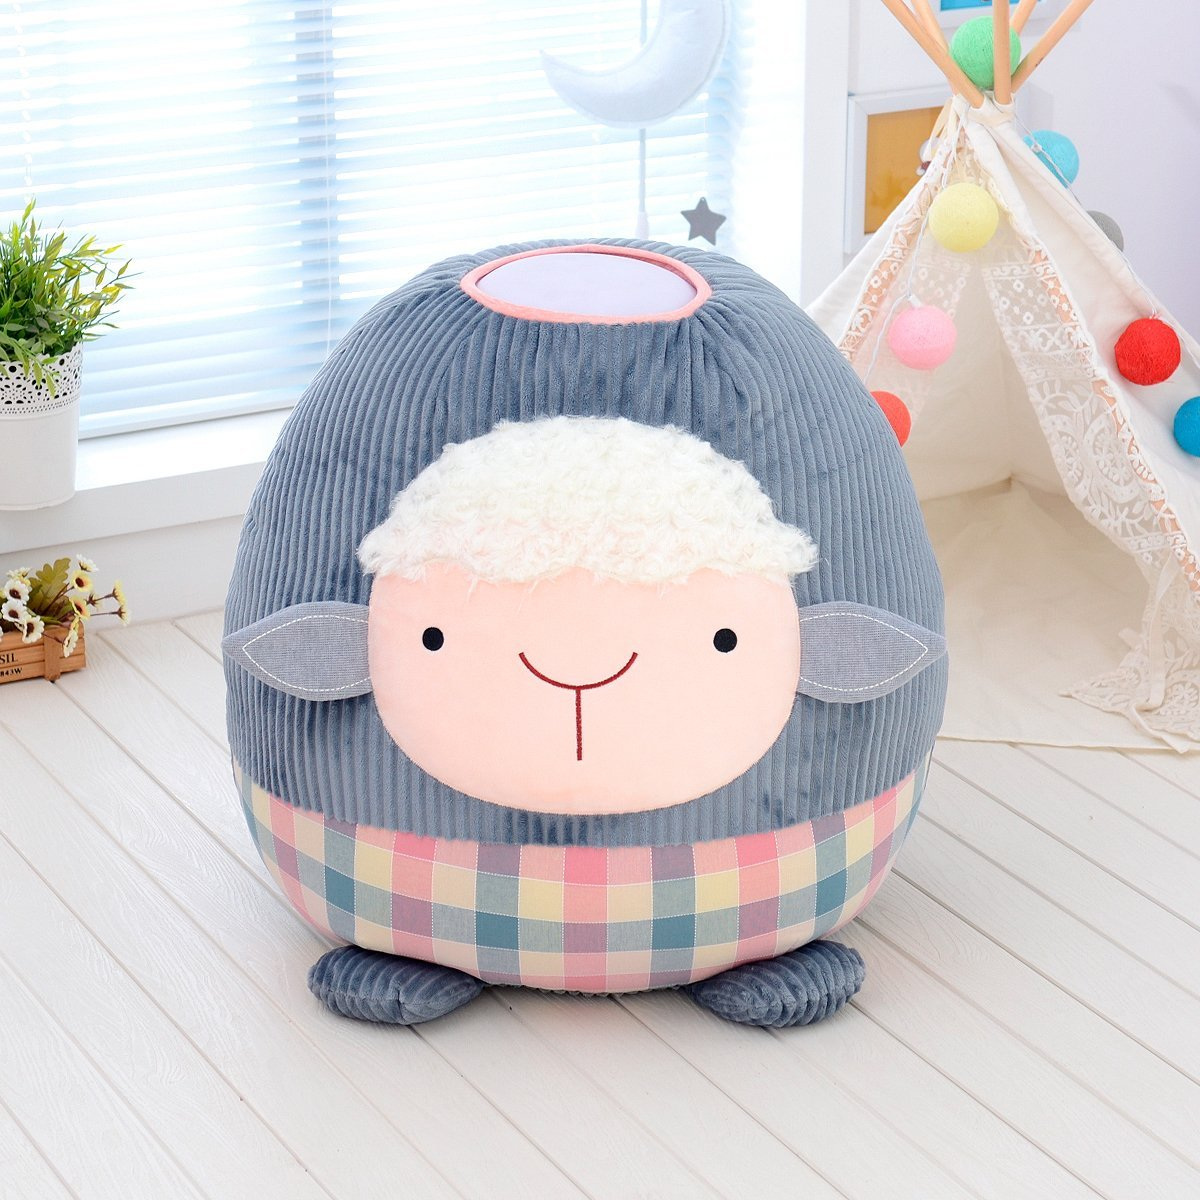 Giant Huggable Sheep Night Light - - Delight Decor - Yellow Octopus